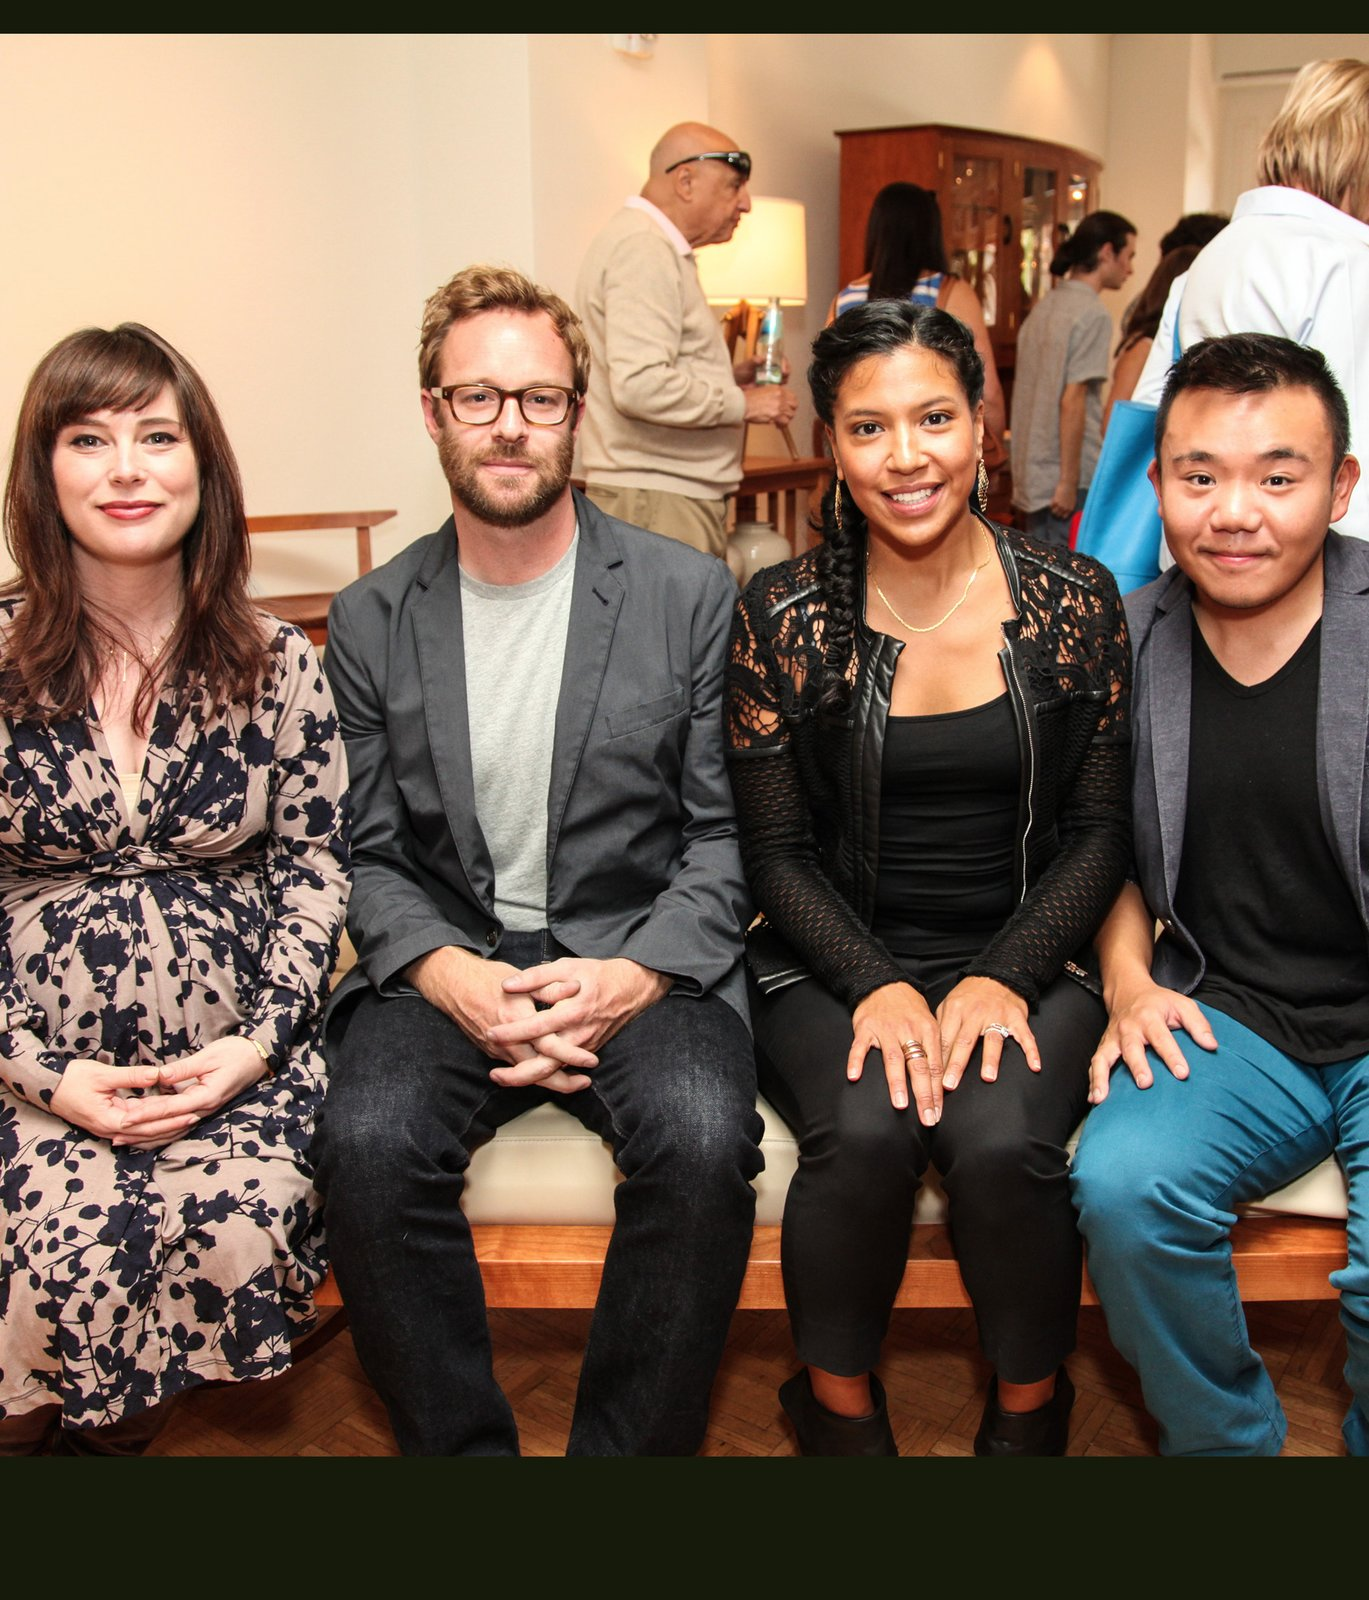 Dwell Editor-in-Chief Amanda Dameron, Thos. Moser Furniture Designer Adam Rogers and young designers, Fahmida Lam and Willy Chan pose with their pieces of furniture as part of the emerging designer program sponsored by Thomas Moser. Photo Courtesy Stephen Lovekin and Don Bowers.  Photo 3 of 13 in Dwell Celebrates Another Successful City Modern